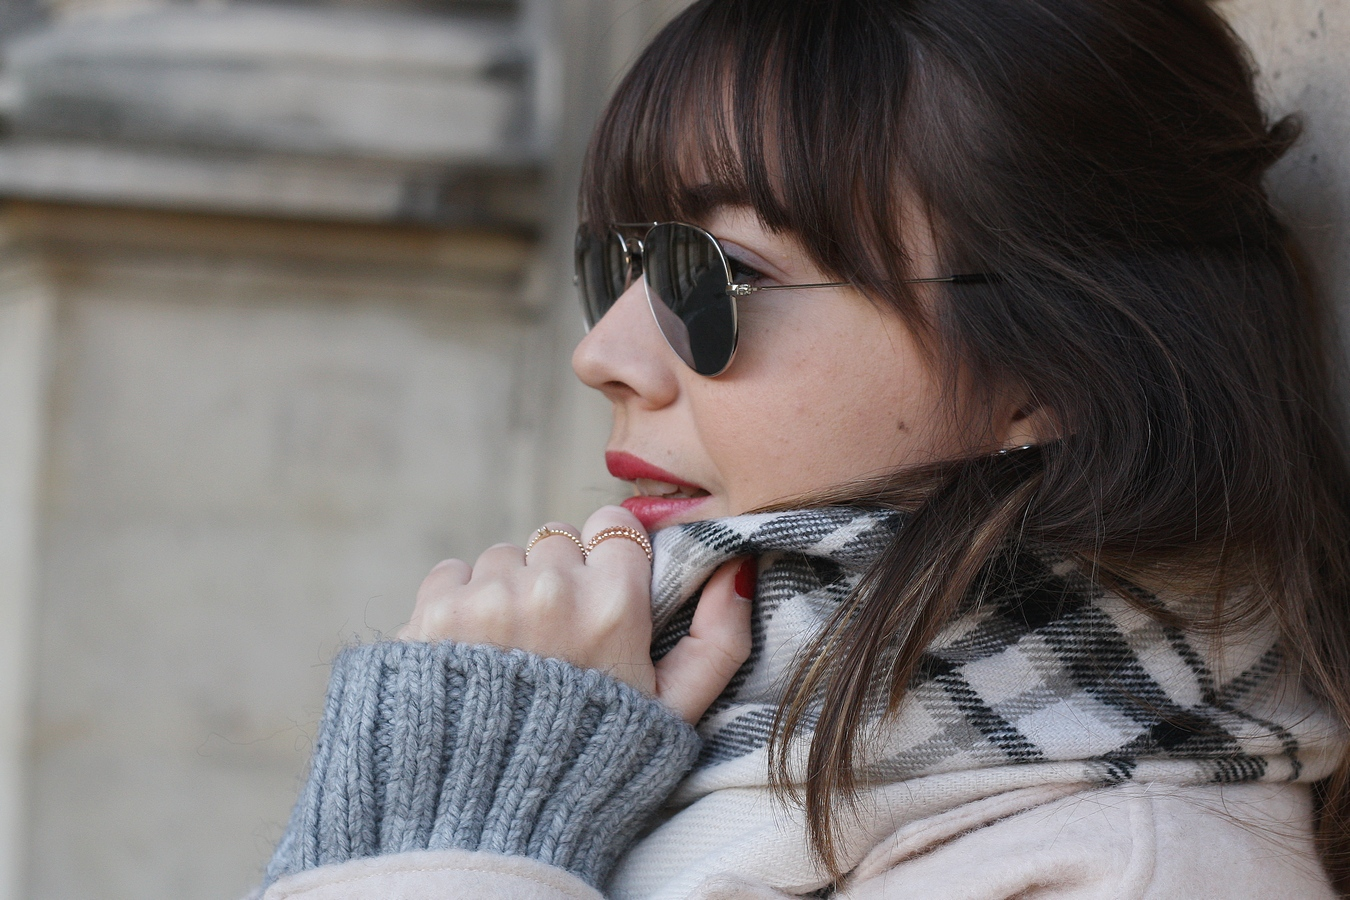 Blog mode femme Paris - Du style, Madame - Streetstyle - derbies - silver